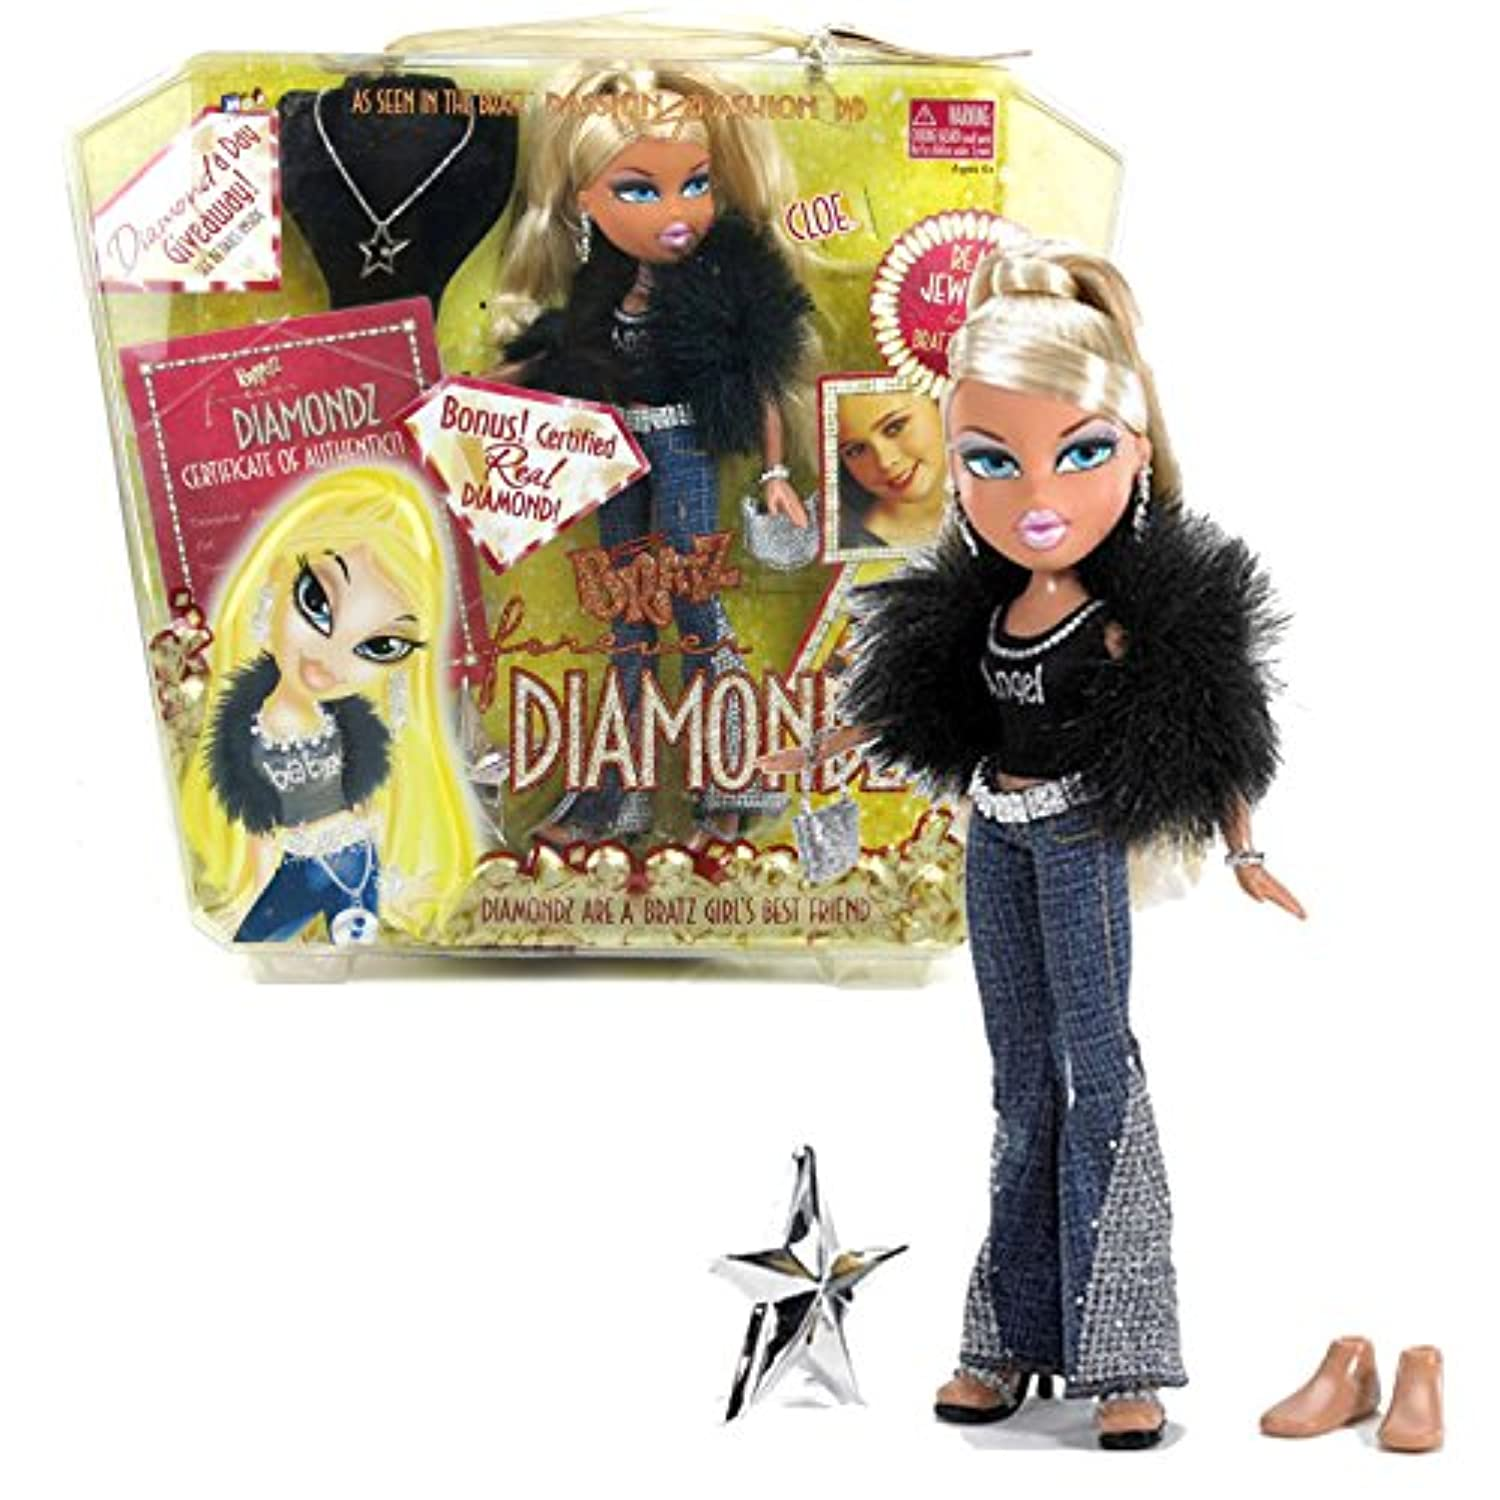 MGA Entertainment Bratz Forever Diamondz Series 25cm Doll - CLOE in Black Tops, Blue Denim Pants and Faux Fur Jacket with Necklace, Purse, Extra Pair of Feet and Hairbrush